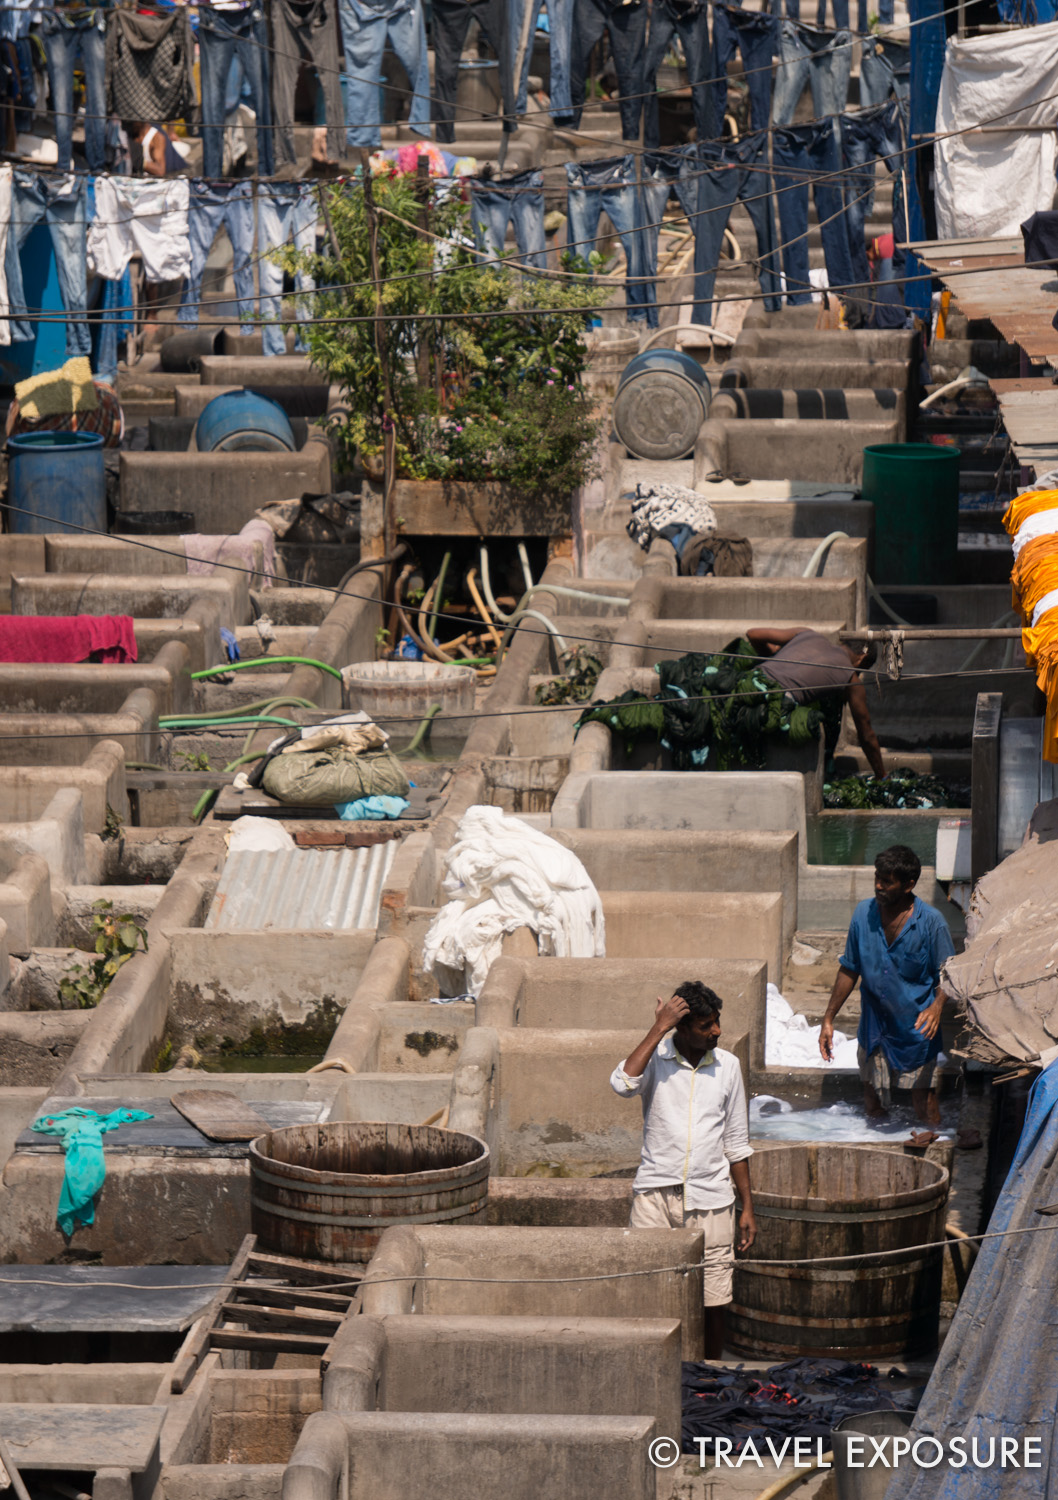 The Mahalaxmi dhobi ghat in Mumbai, the world's largest open air laundry